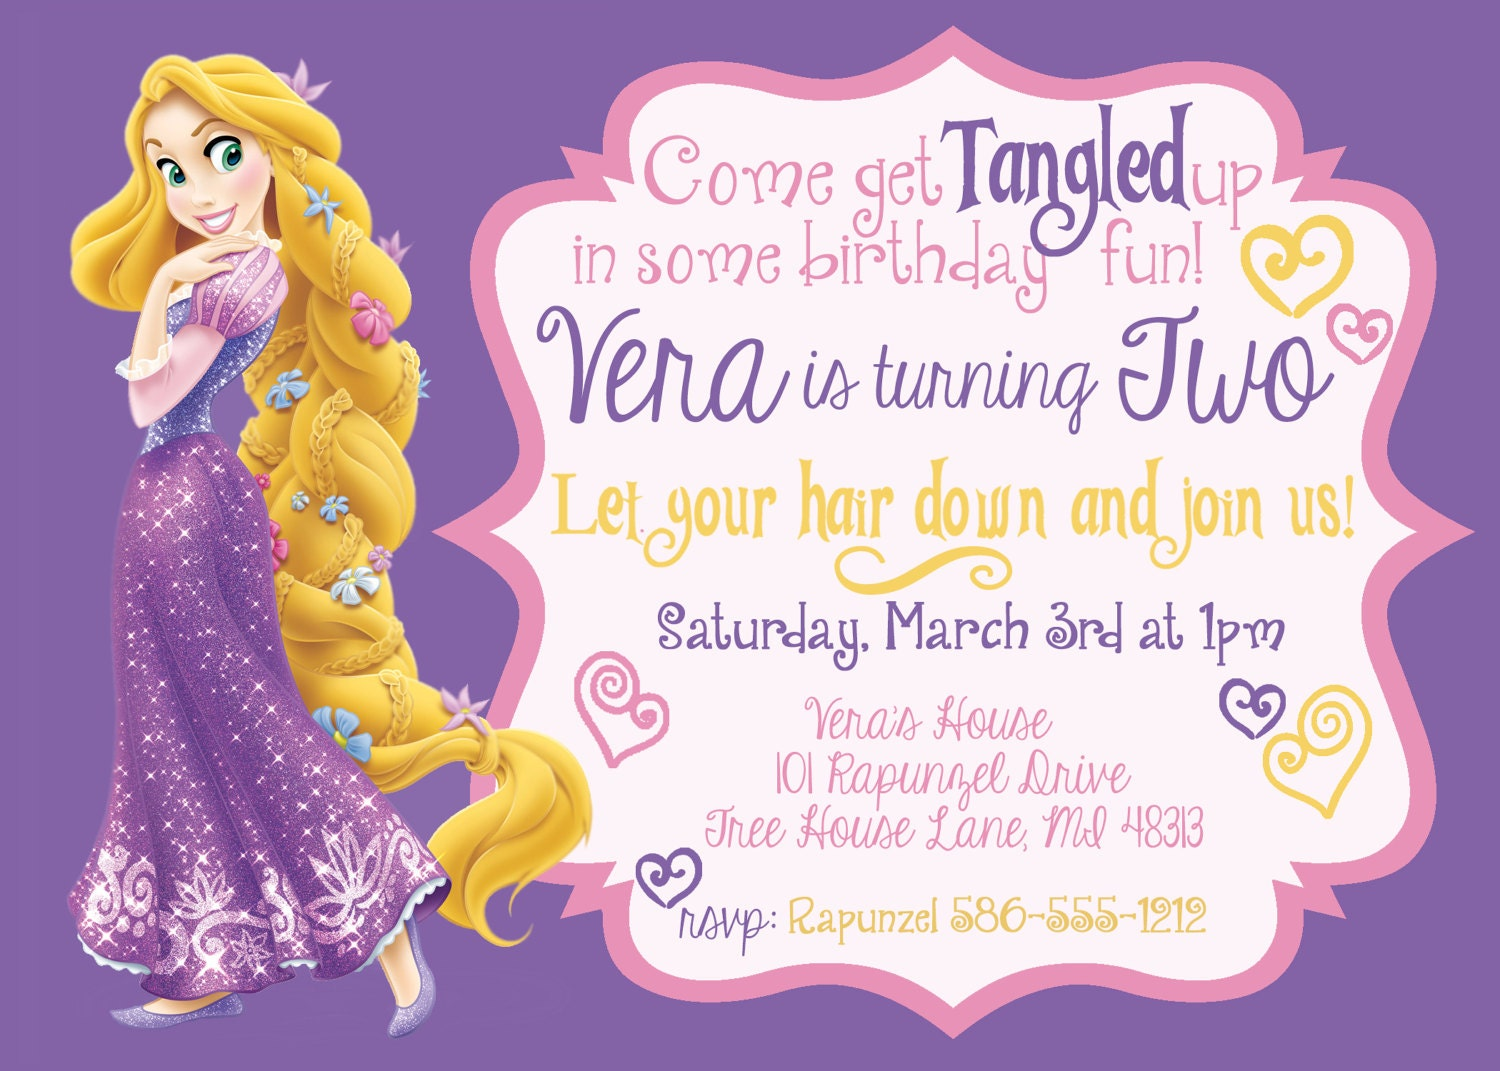 Tangled birthday invitation rapunzel birthday invitation tangled tangled birthday invitation rapunzel birthday invitation tangled rapunzel birthday invitation rapunzel birthday invite digital bookmarktalkfo Image collections